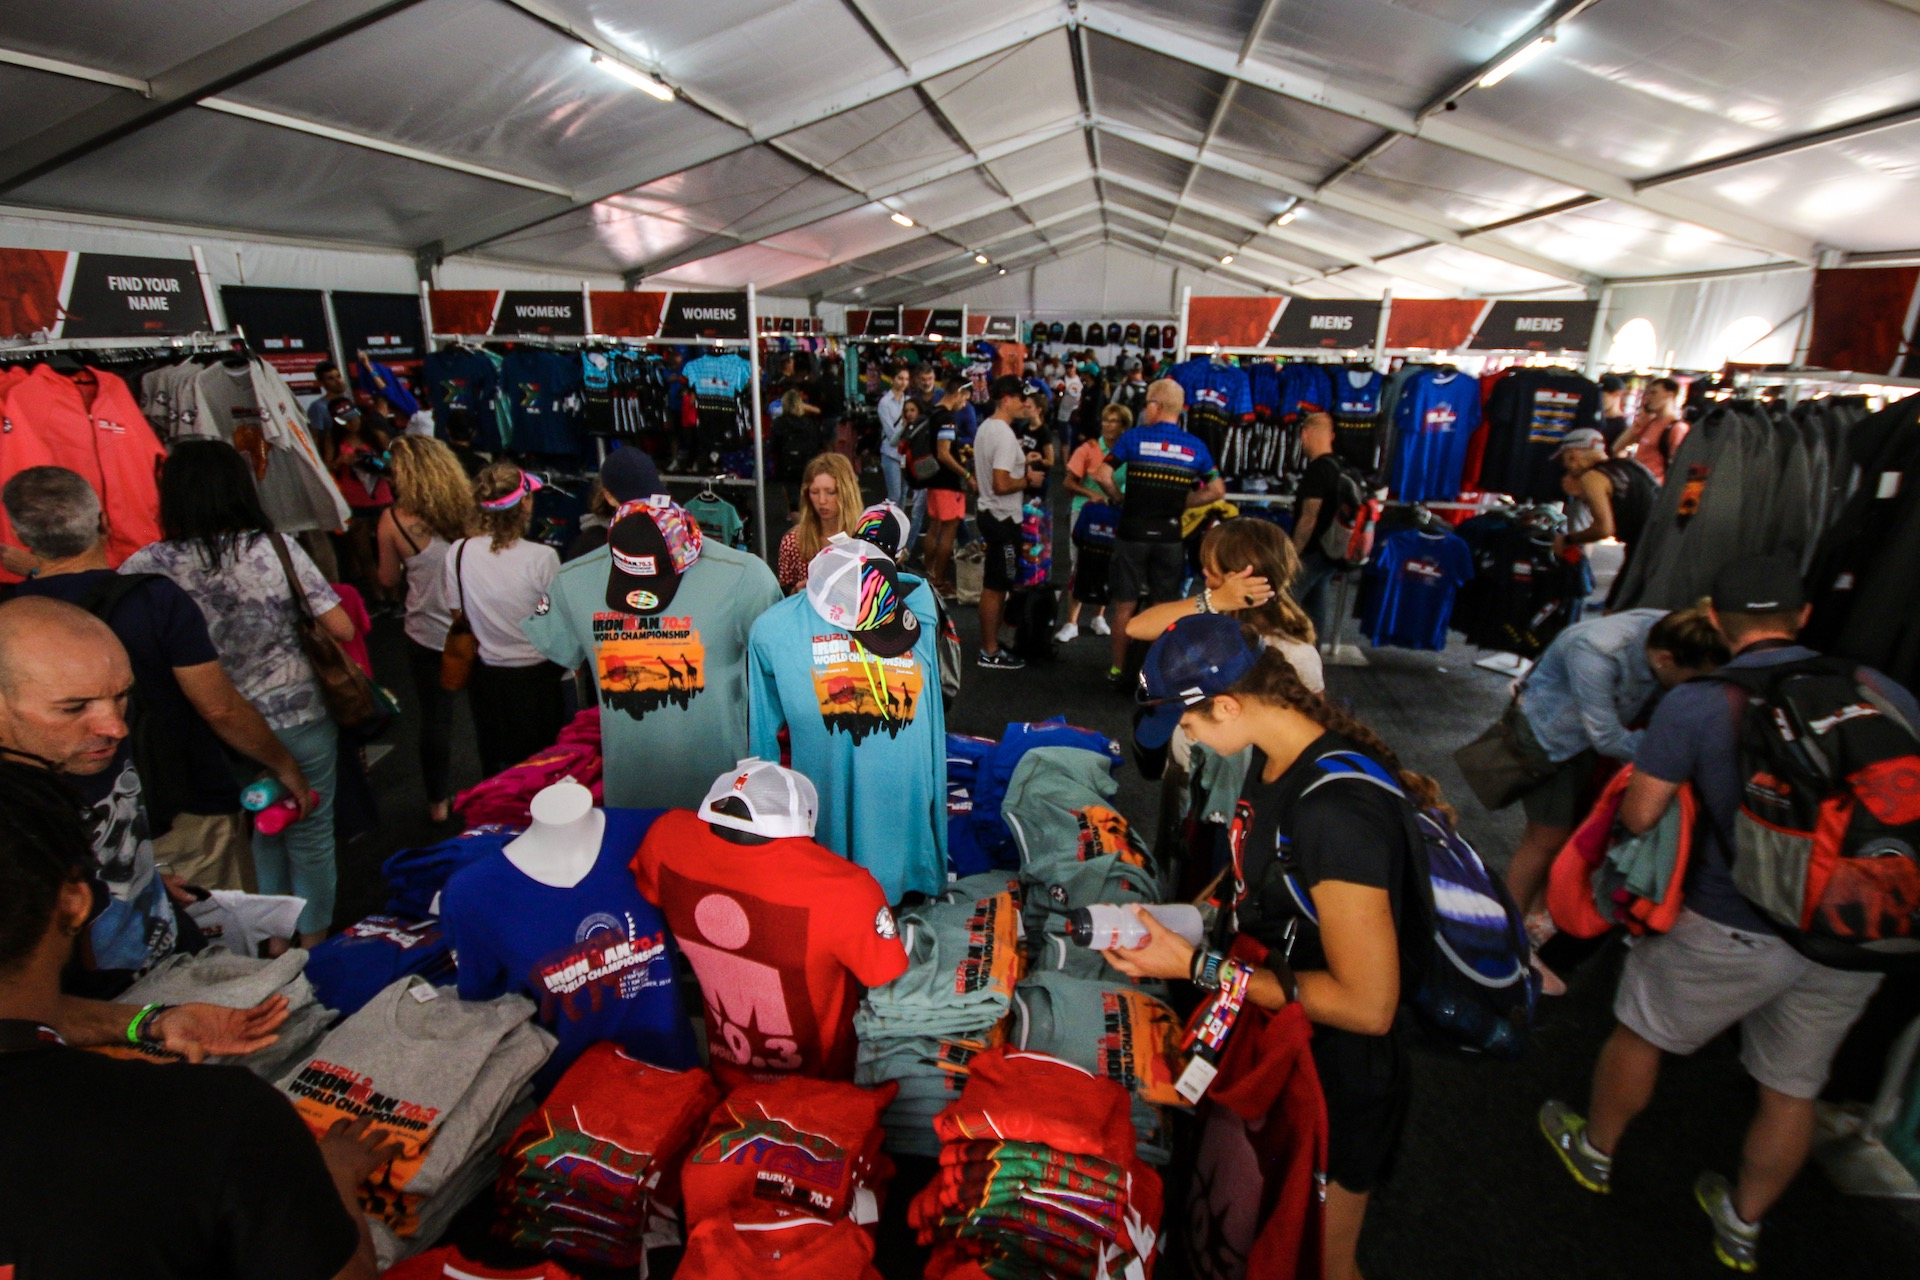 SWAG: The IRONMAN merchandise store has been a popular destination for the masses to pick up a gift for family and friends or as a keepsake item for themselves to commemorate their participation in the 2018 Isuzu IRONMAN 70.3 World Championship triathlon in Nelson Mandela Bay, South Africa (Photo by Craig Muller/IRONMAN)